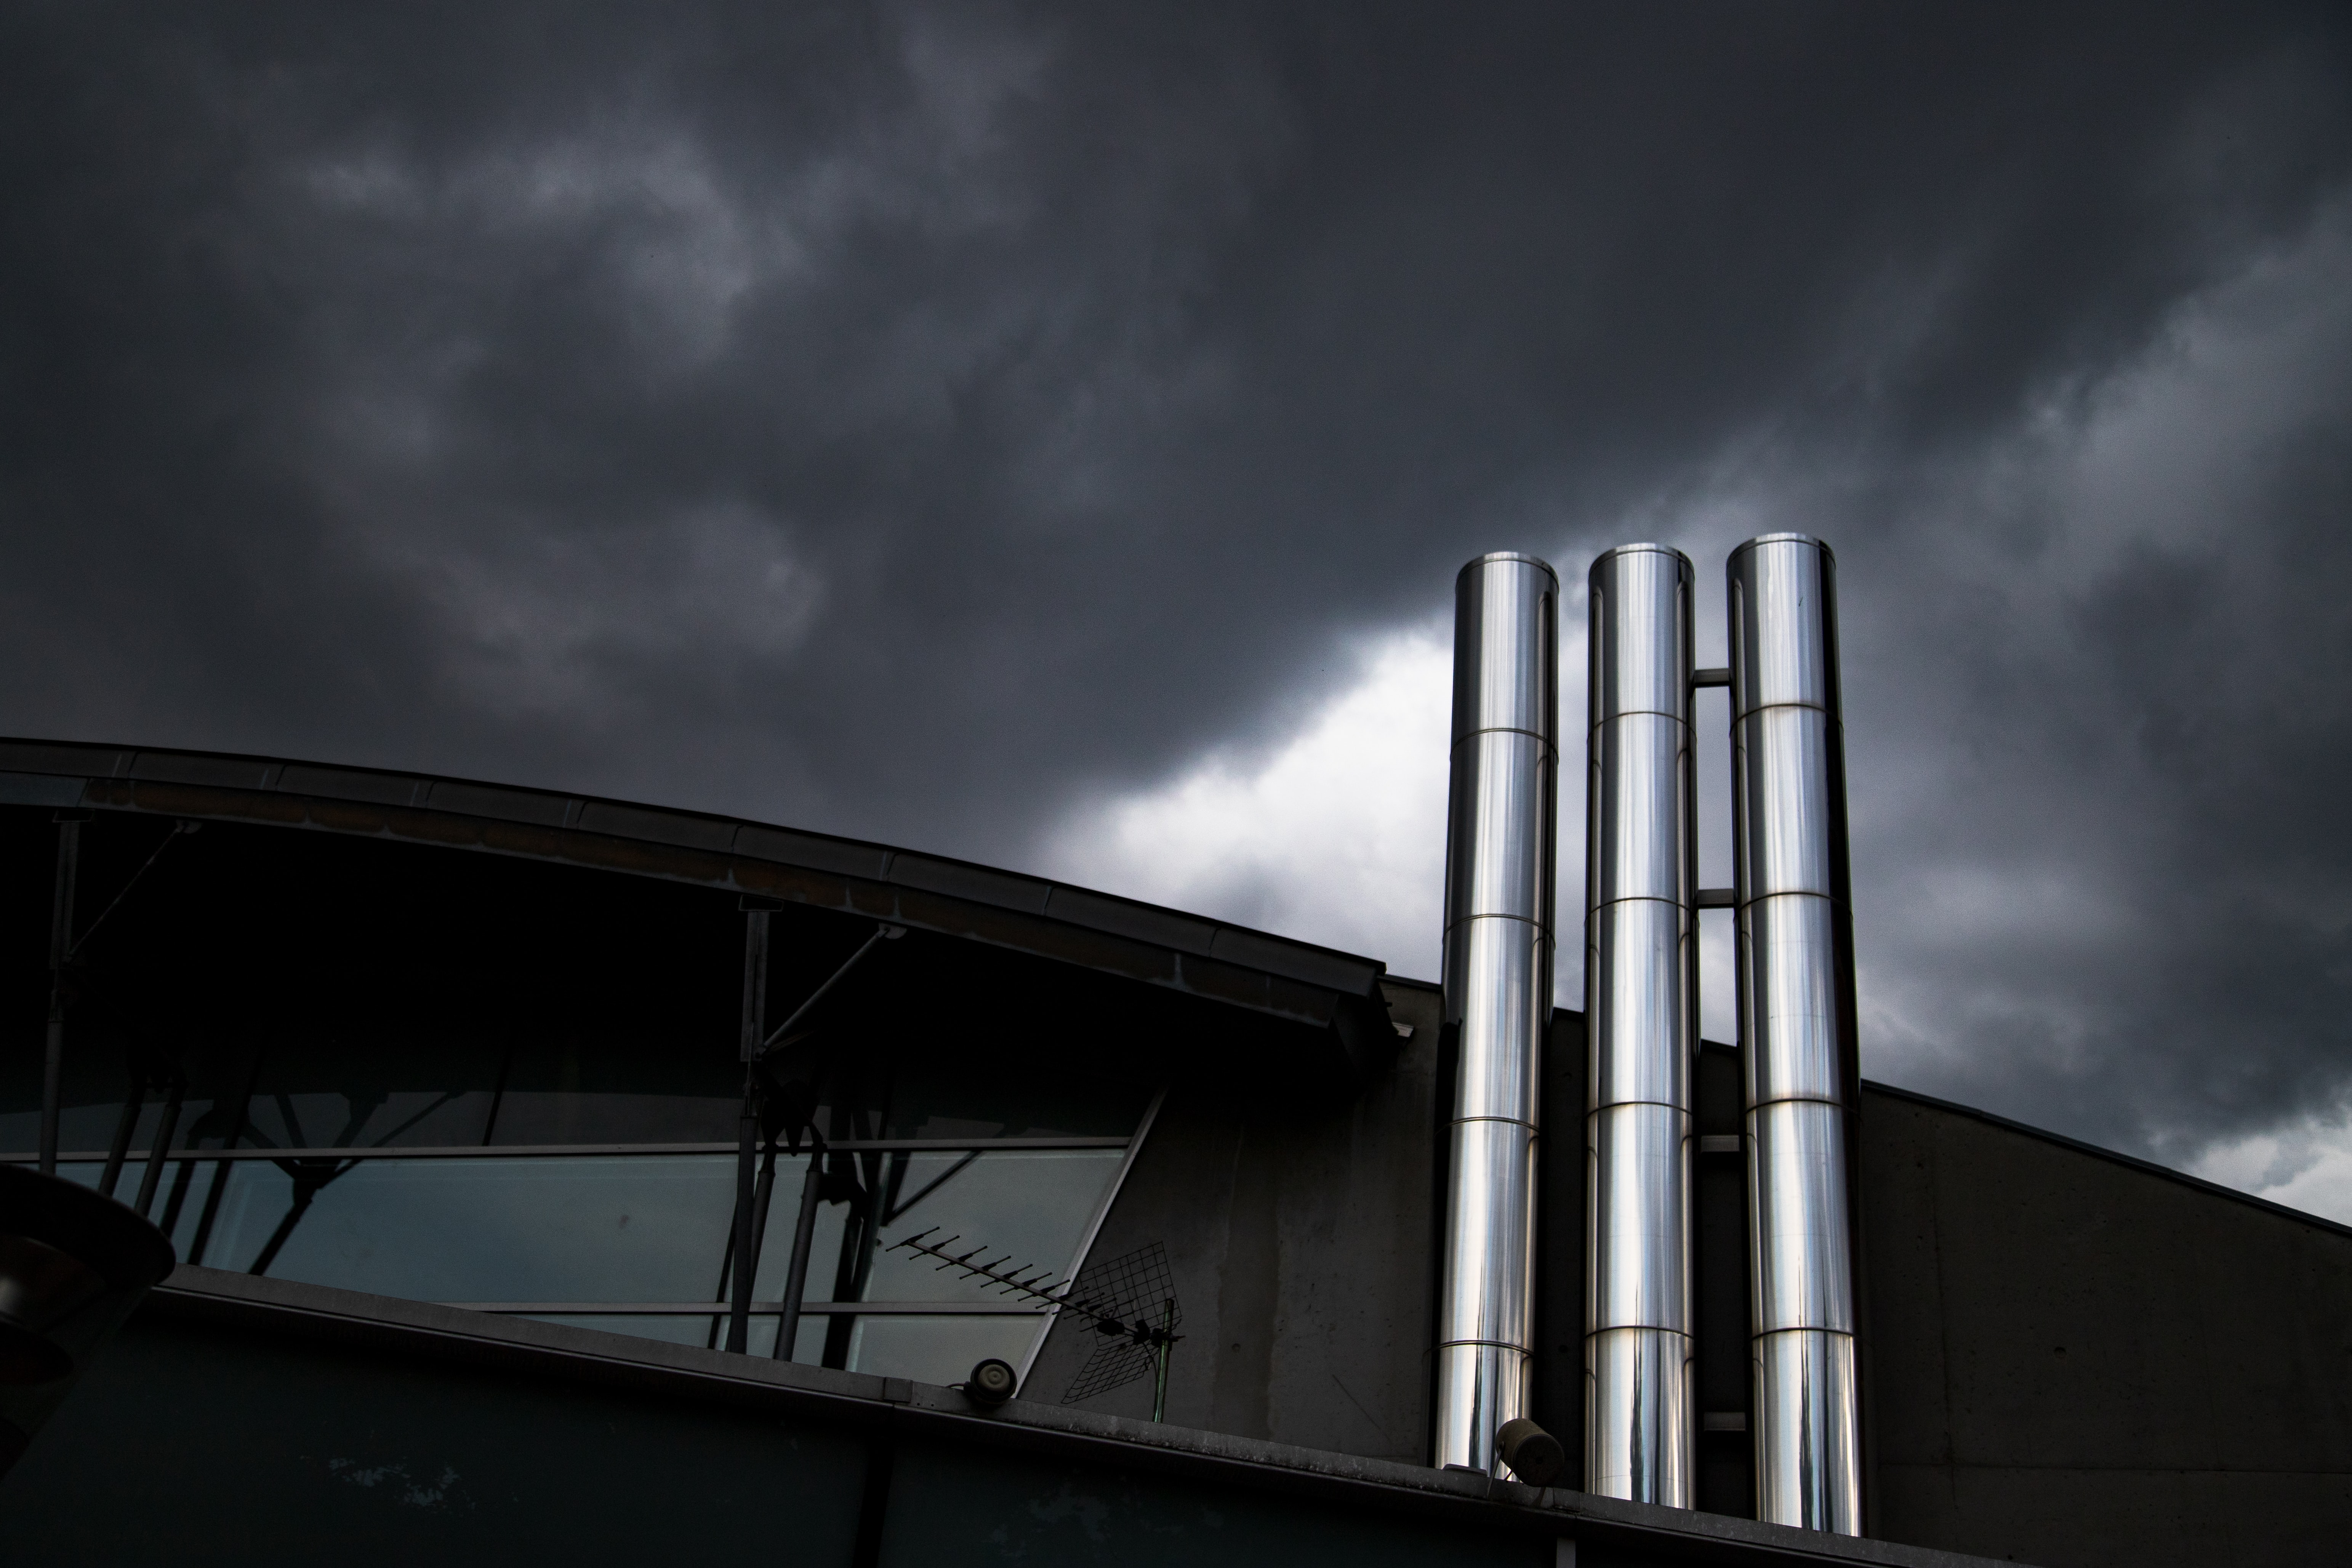 stainless steel tanks on gray cloudy sky